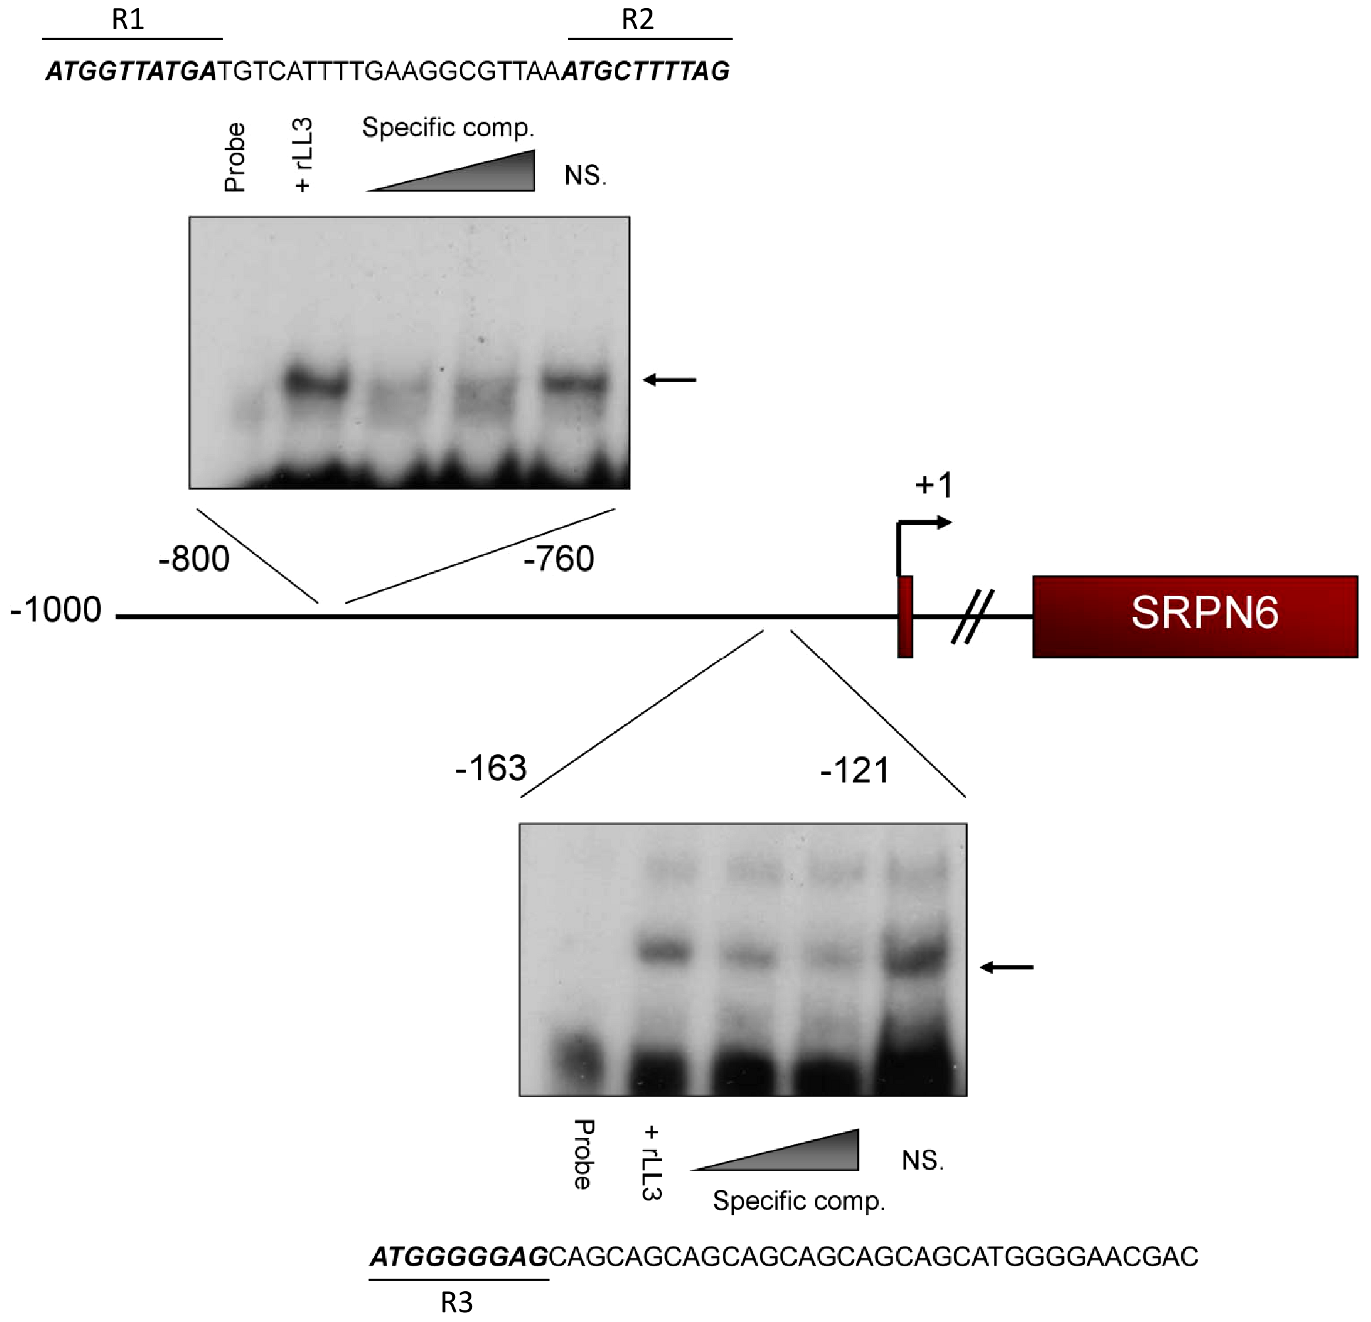 rLL3 binds to specific regions of the SRPN6 promoter.